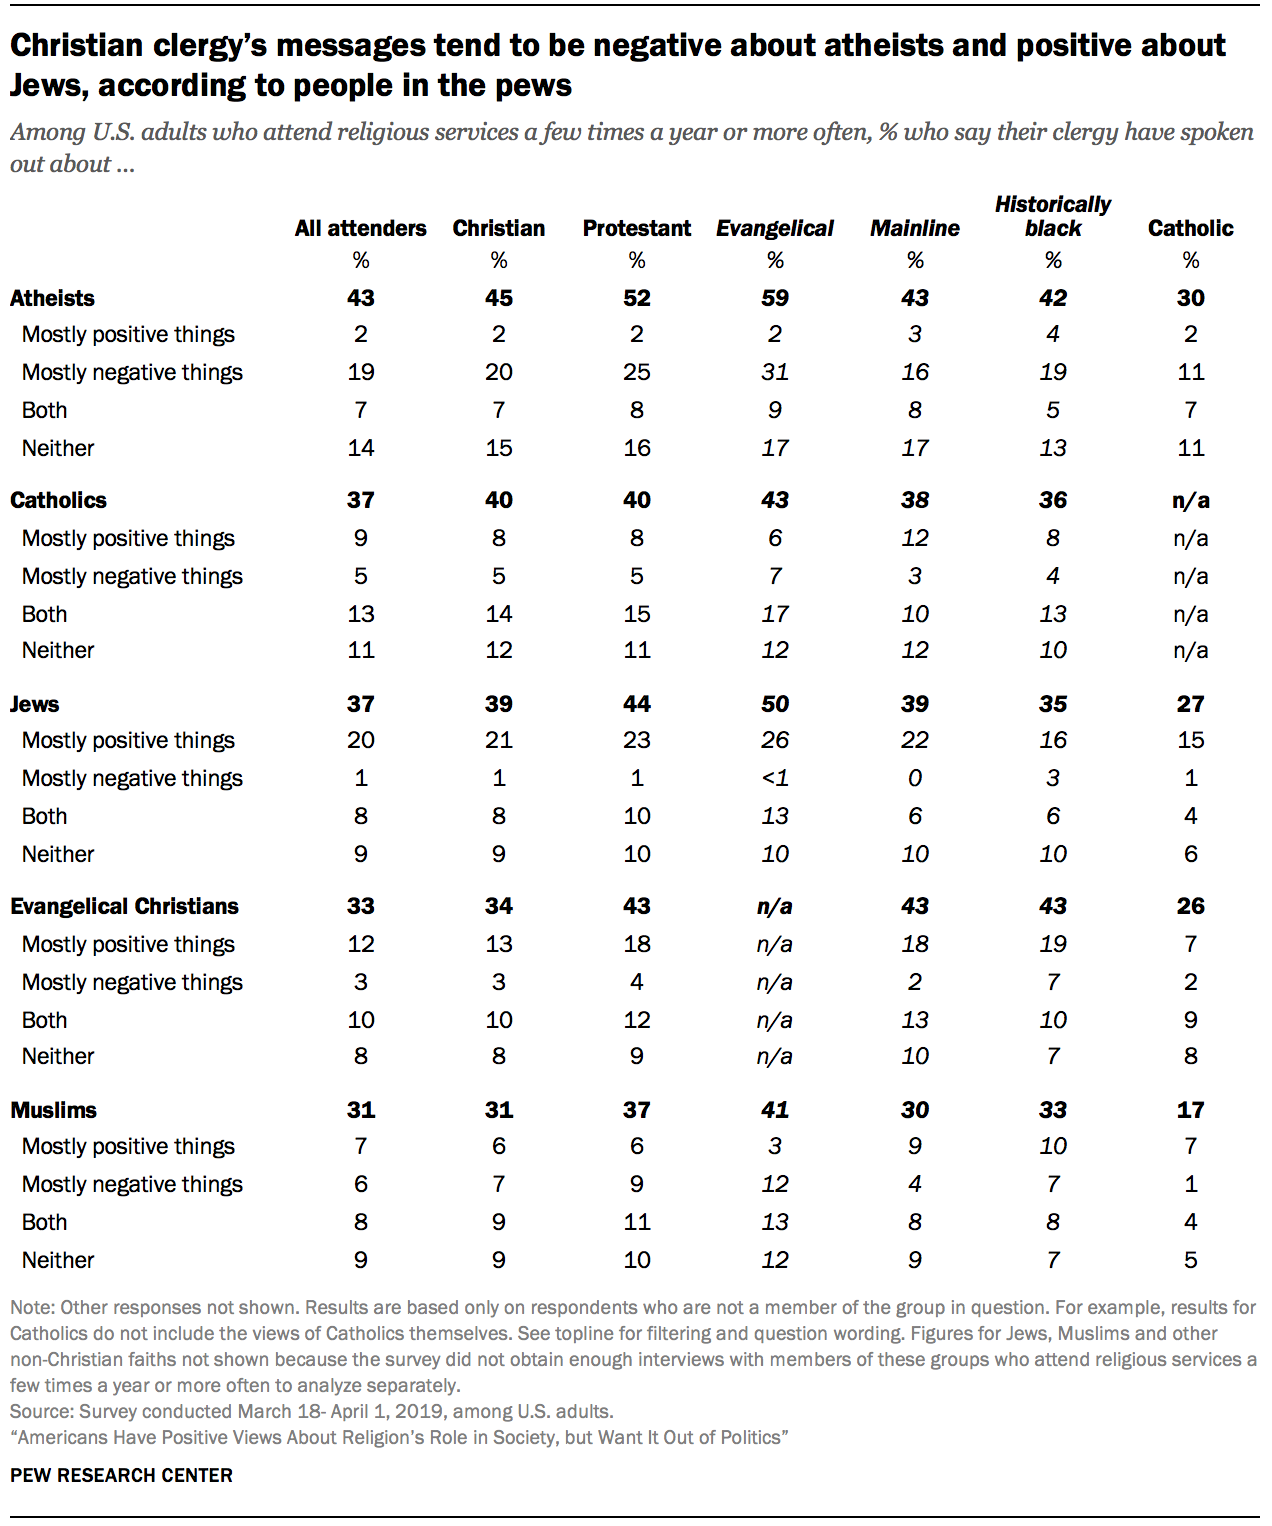 Christian clergy's messages tend to be negative about atheists and positive about Jews, according to people in the pews